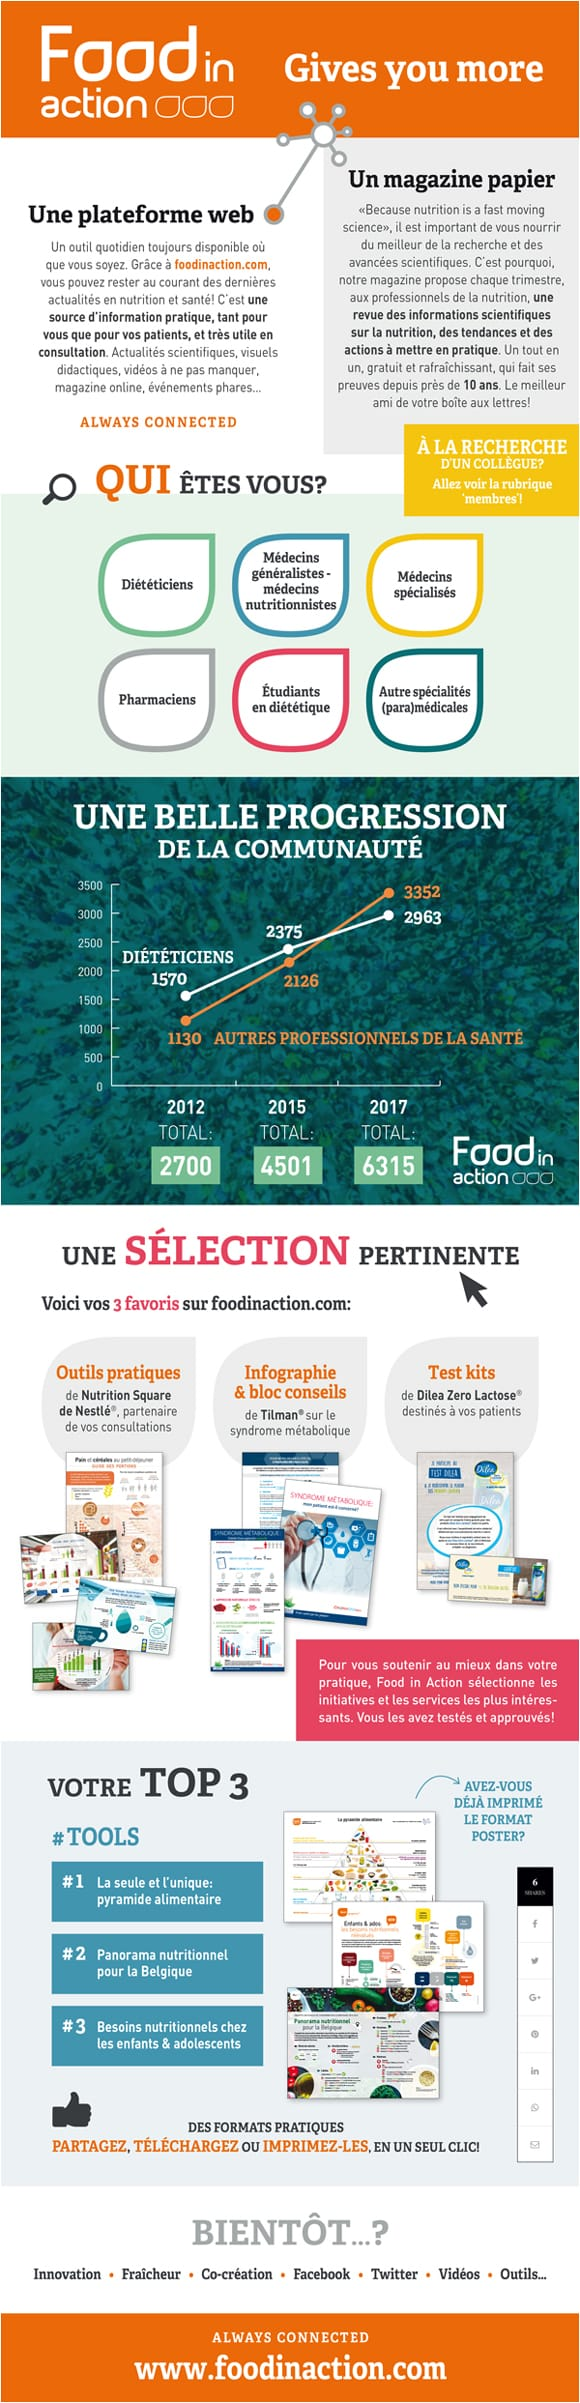 infographie-food-in-action-gives-more